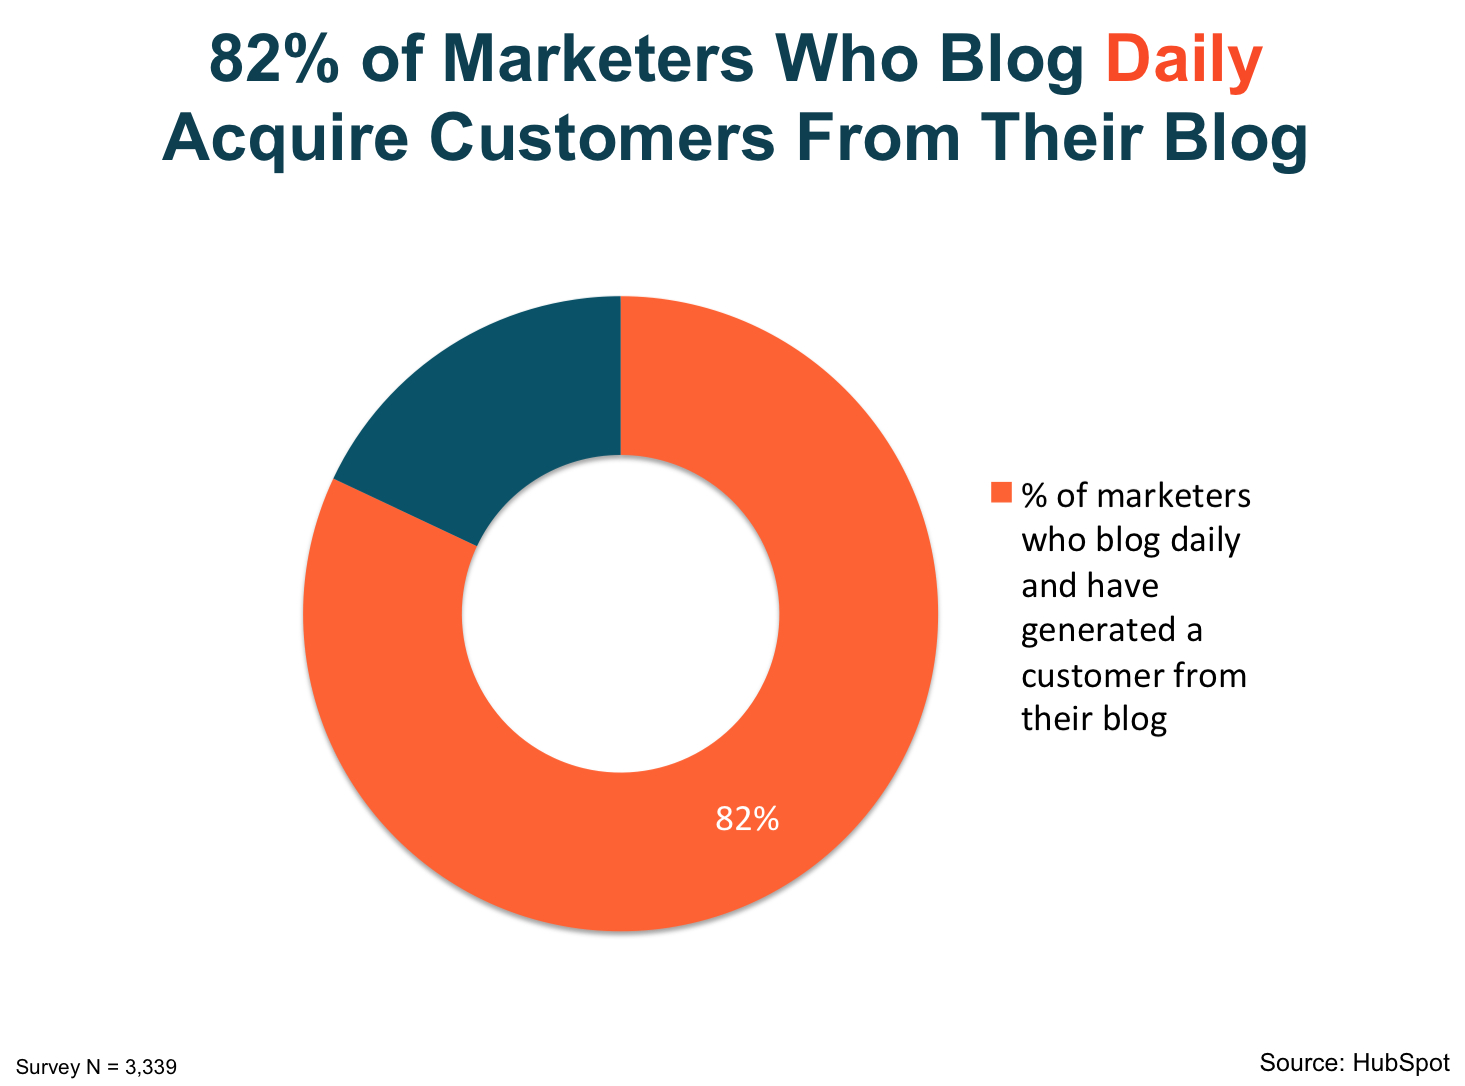 82_percent_of_marketers_who_blog_daily_acquire_customers_from_their_blog